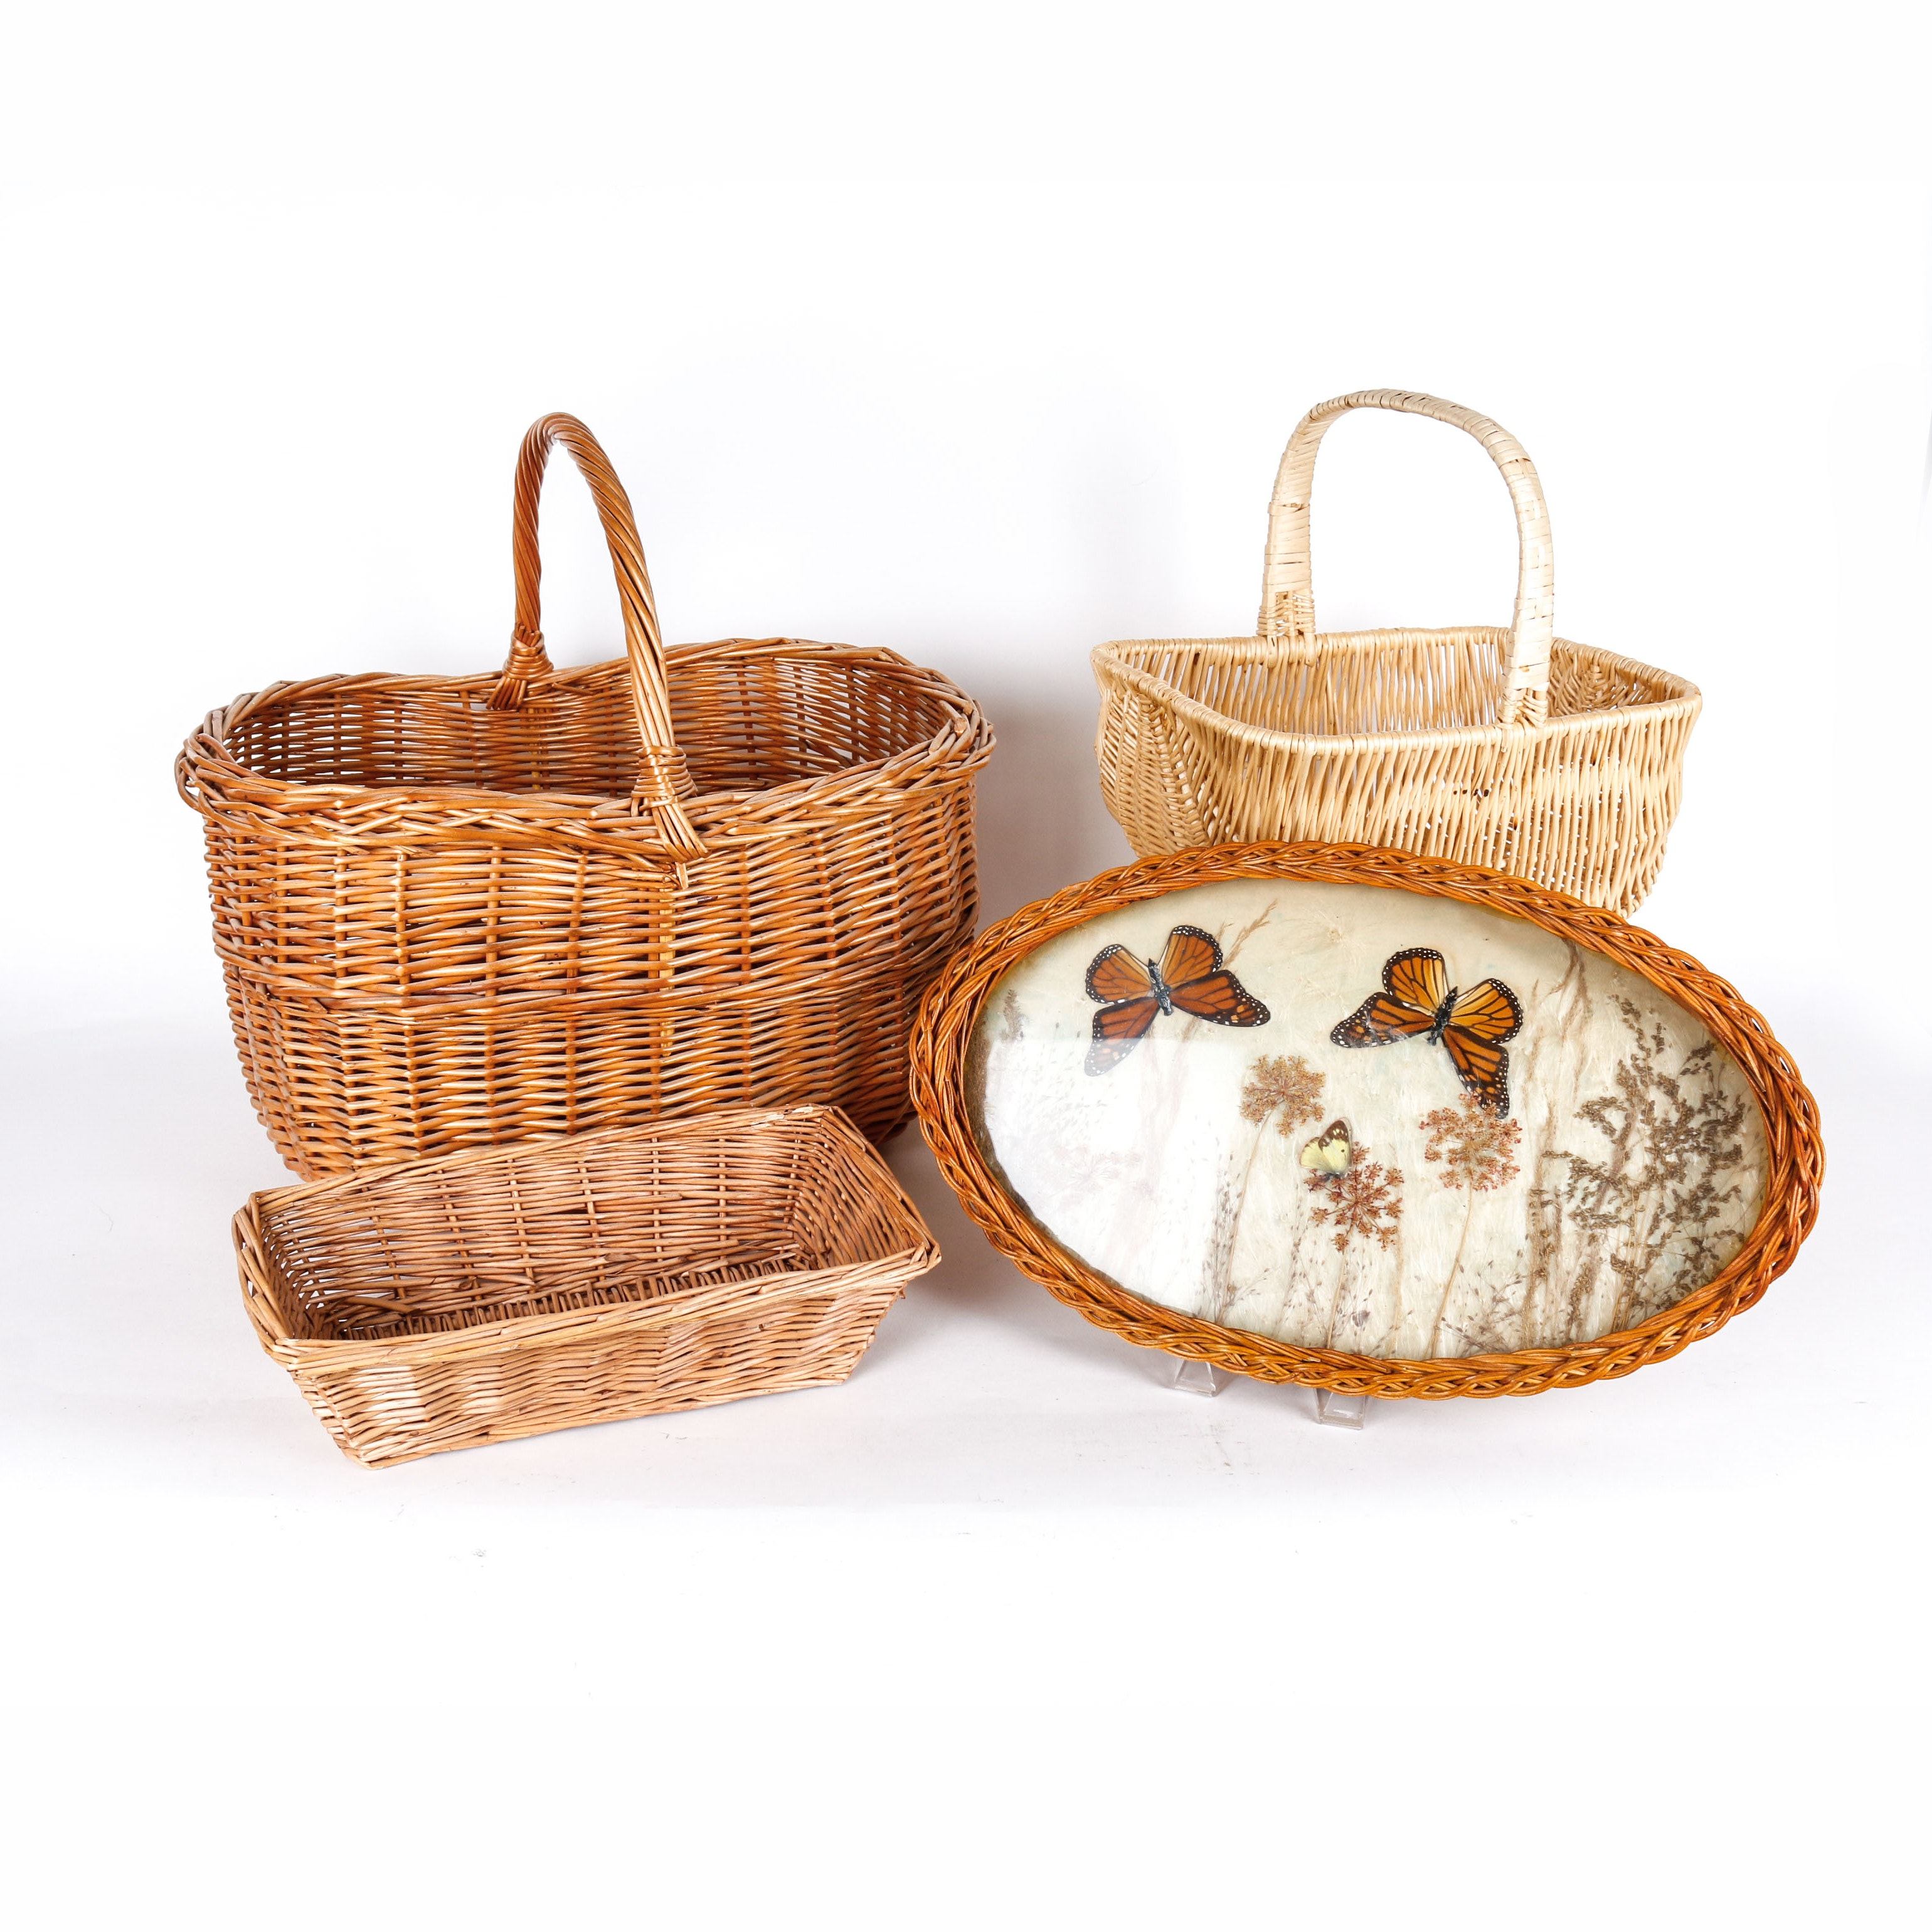 Selection of Vintage Wicker Baskets and A Tray